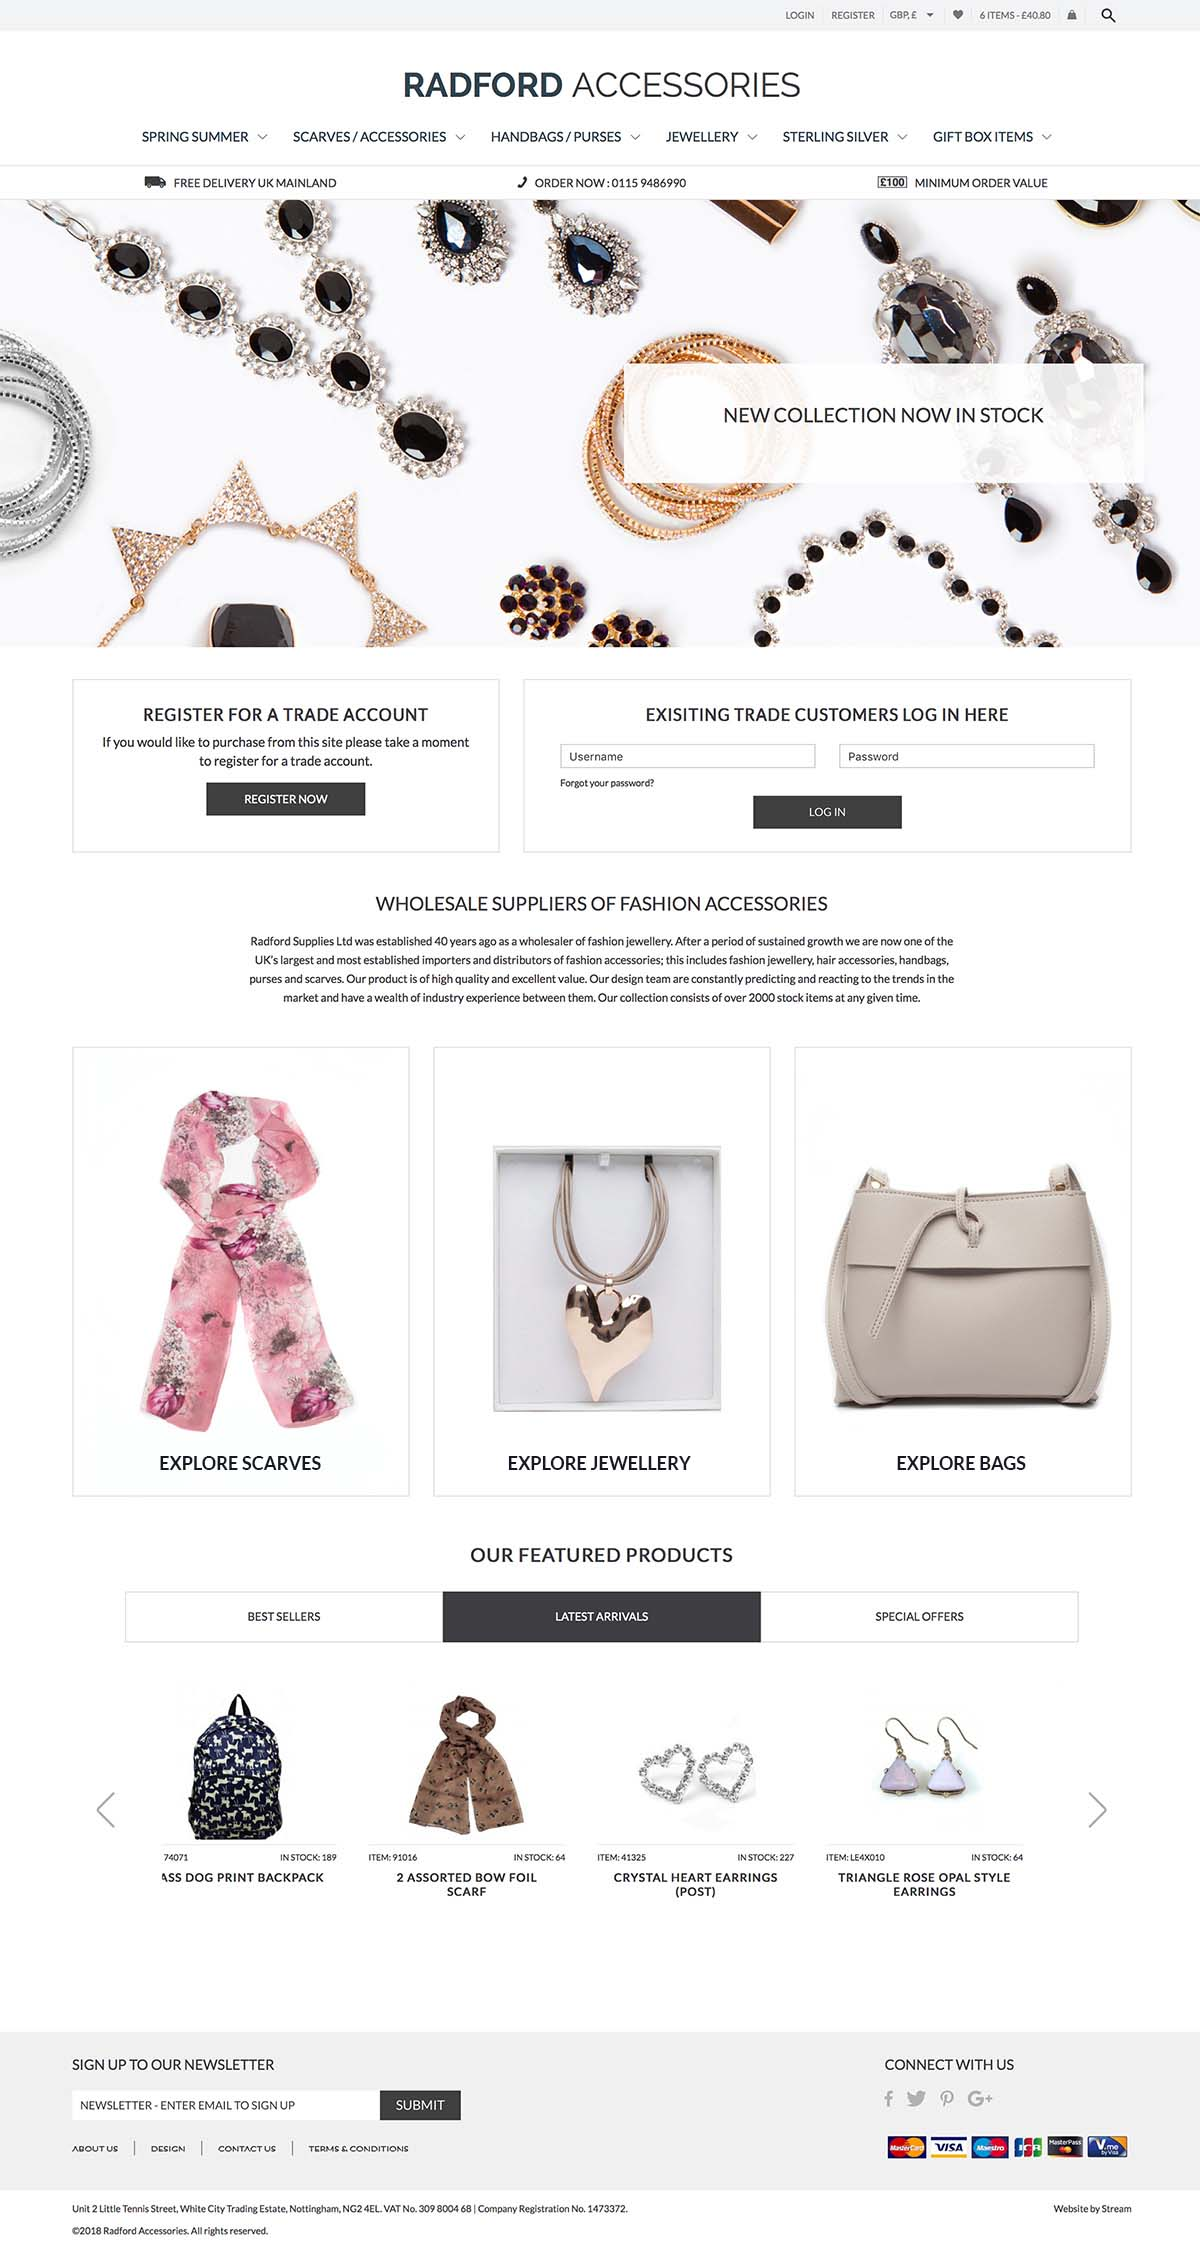 ecommerce homepage for Radford accessories